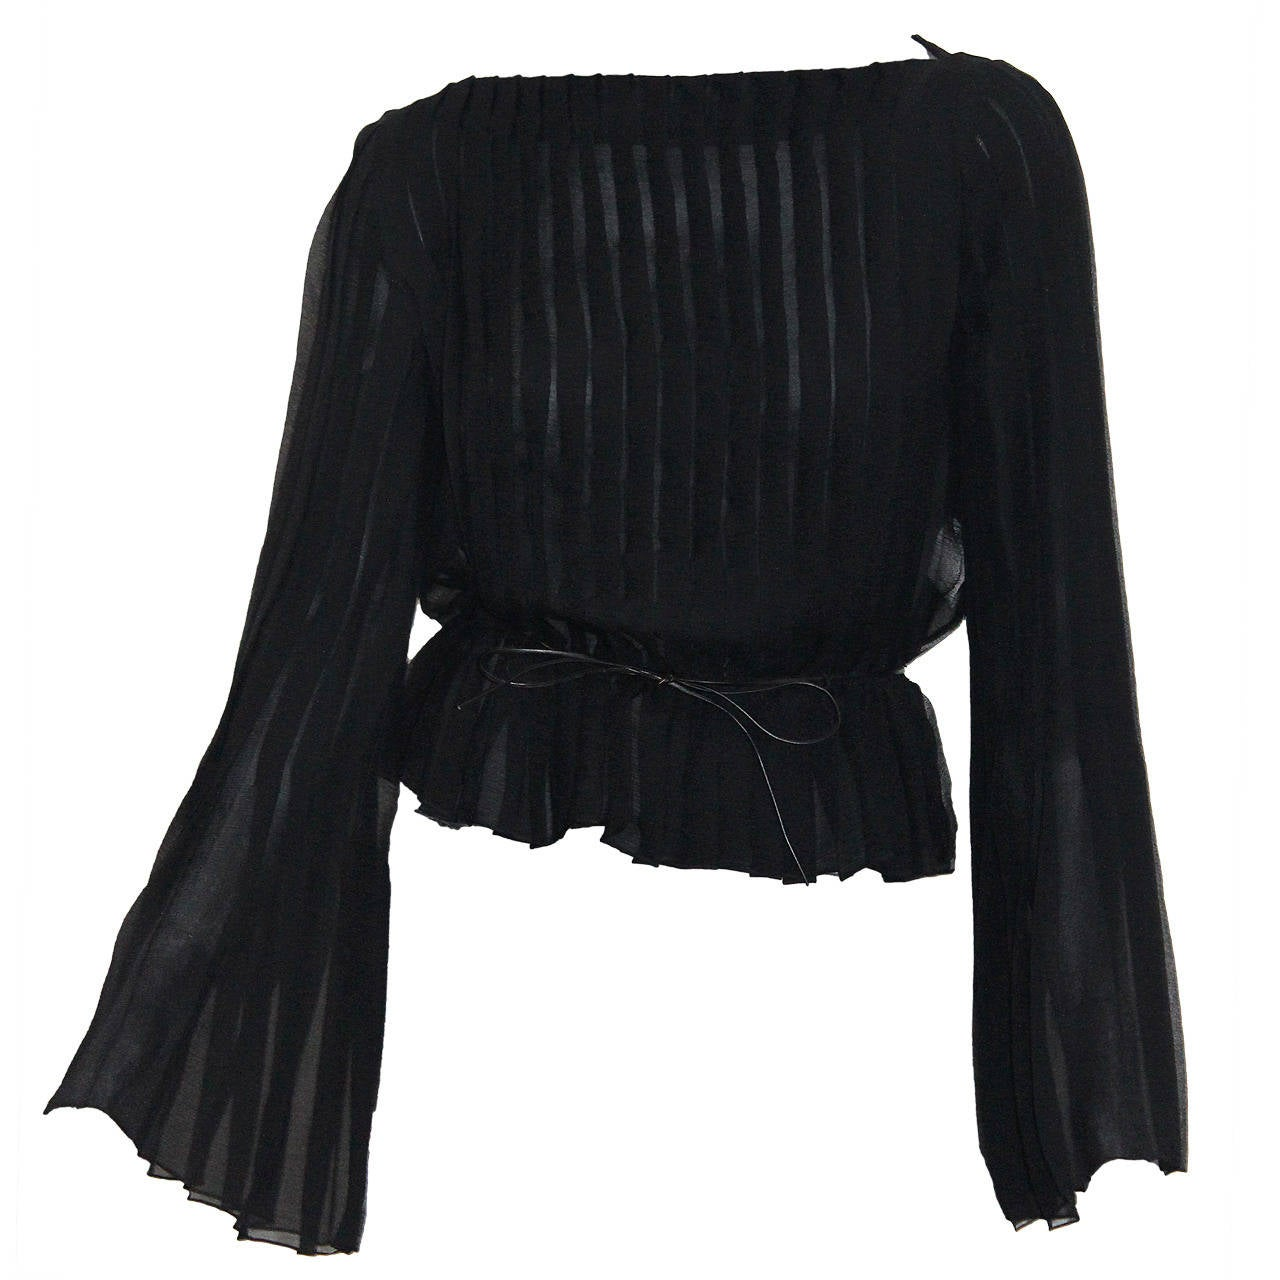 Tom Ford for Gucci Pleated Silk Chiffon Blouse 1